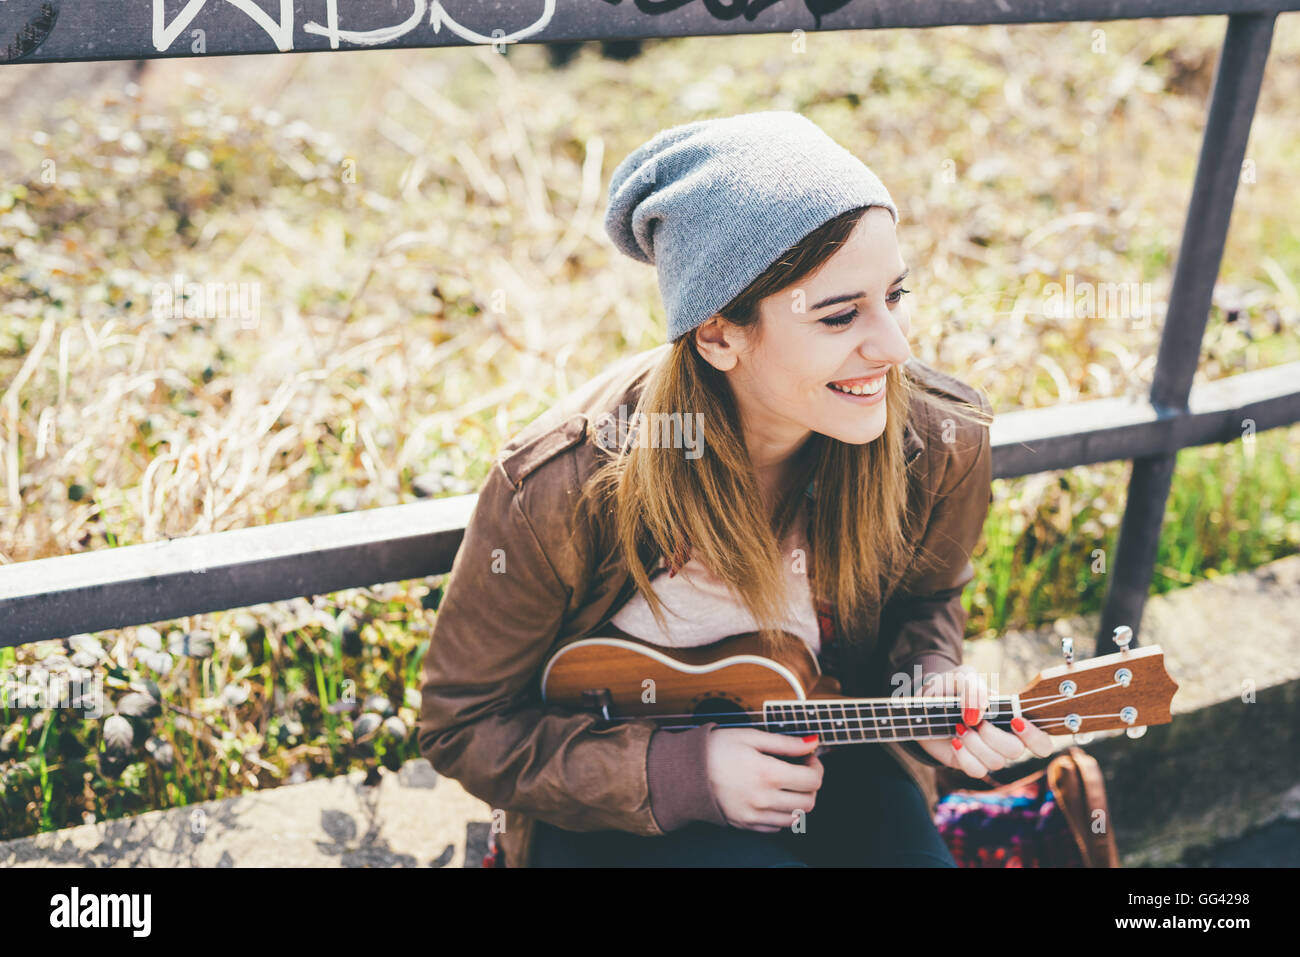 Half length of young beautiful caucasian woman outdoor in the city playing ukulele overlooking smiling - musician, - Stock Image